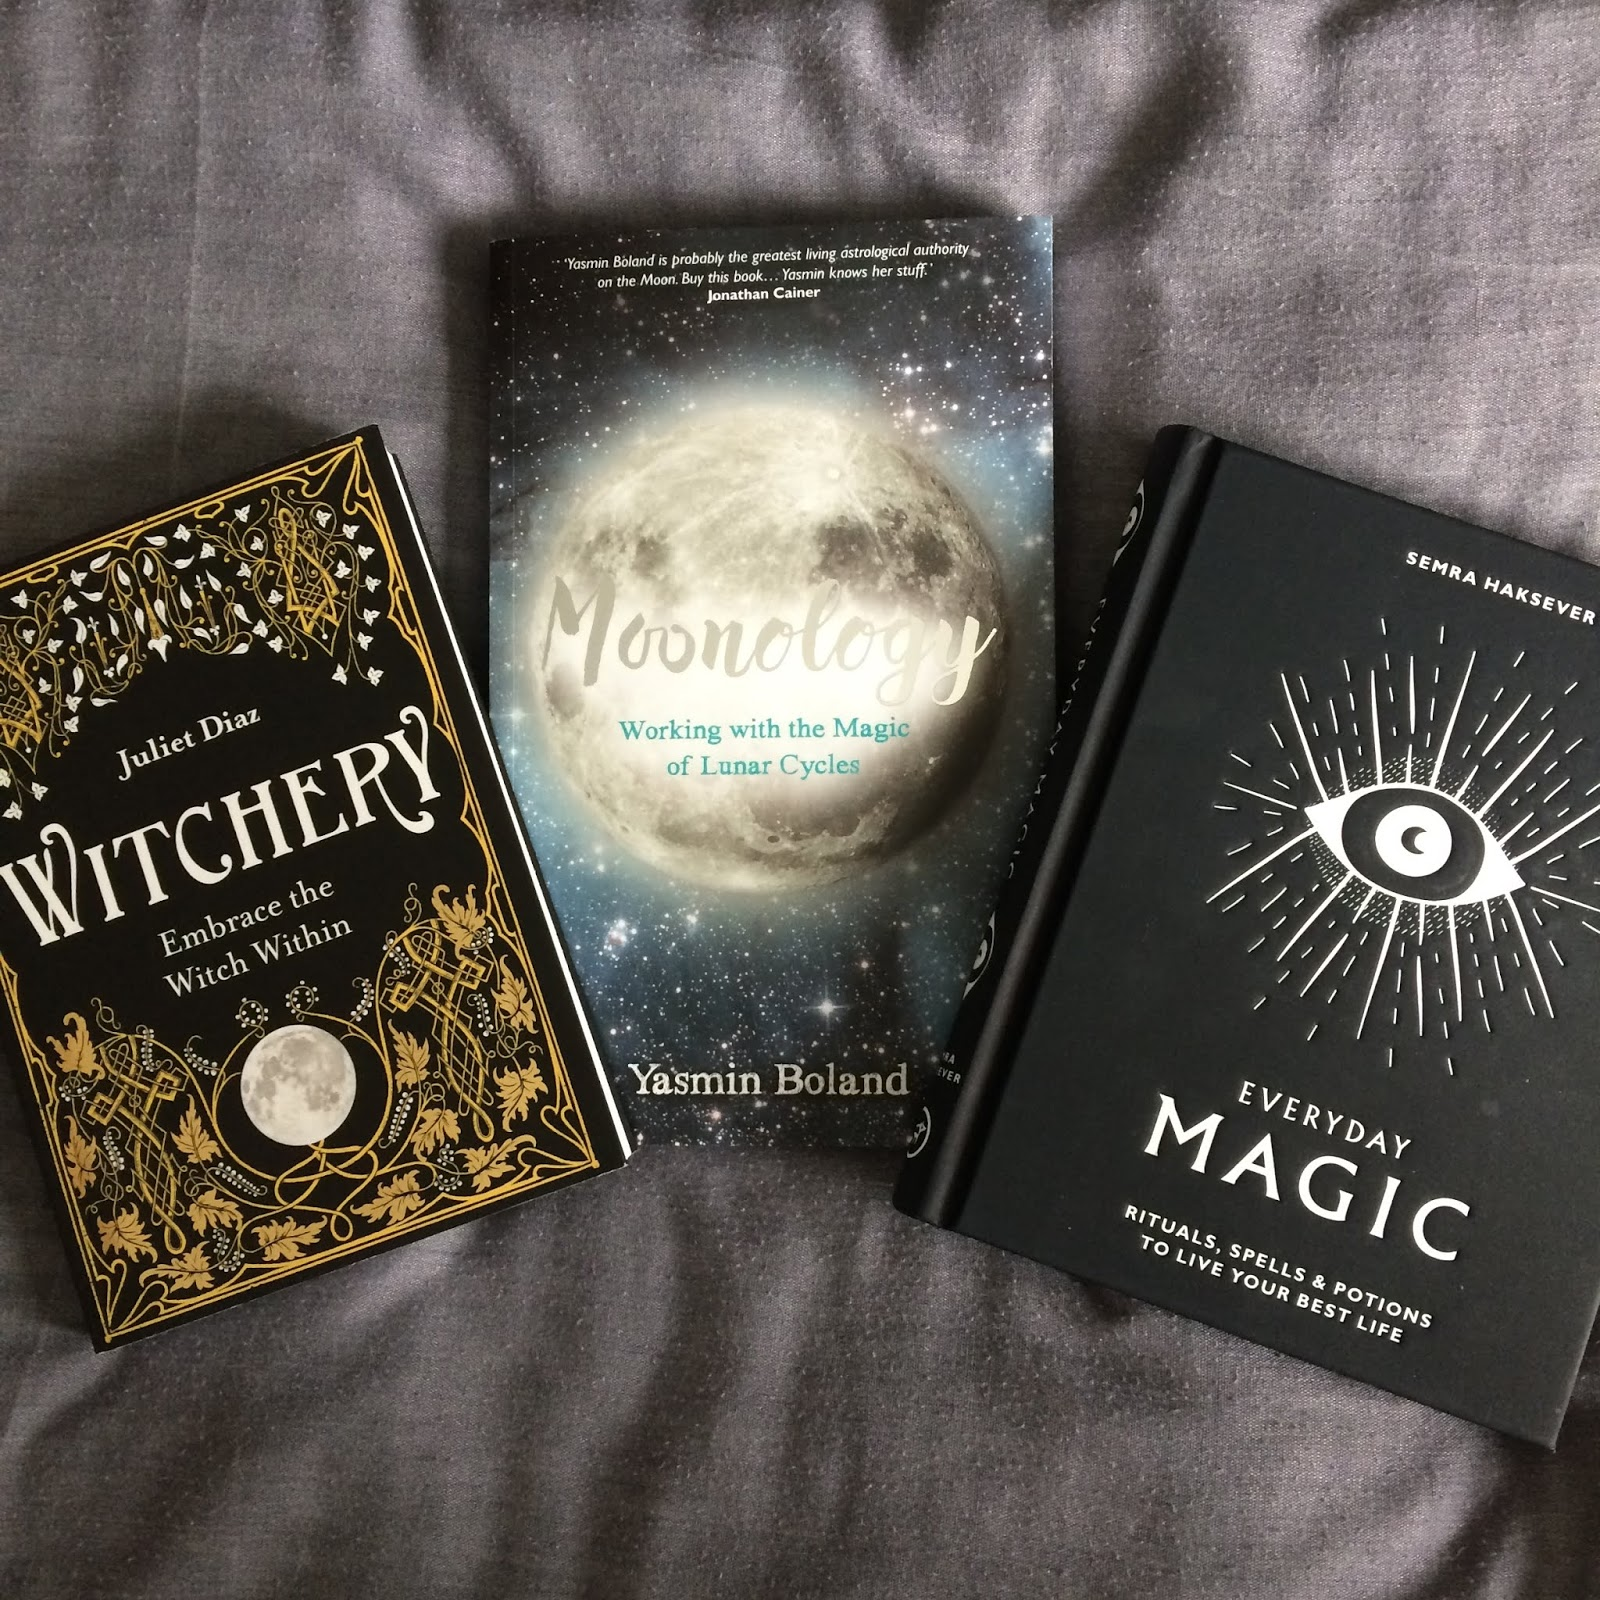 Witchery by Juliet Diaz, Moonology by Yasmin Boland, and Everyday Magic by Semra Haksever